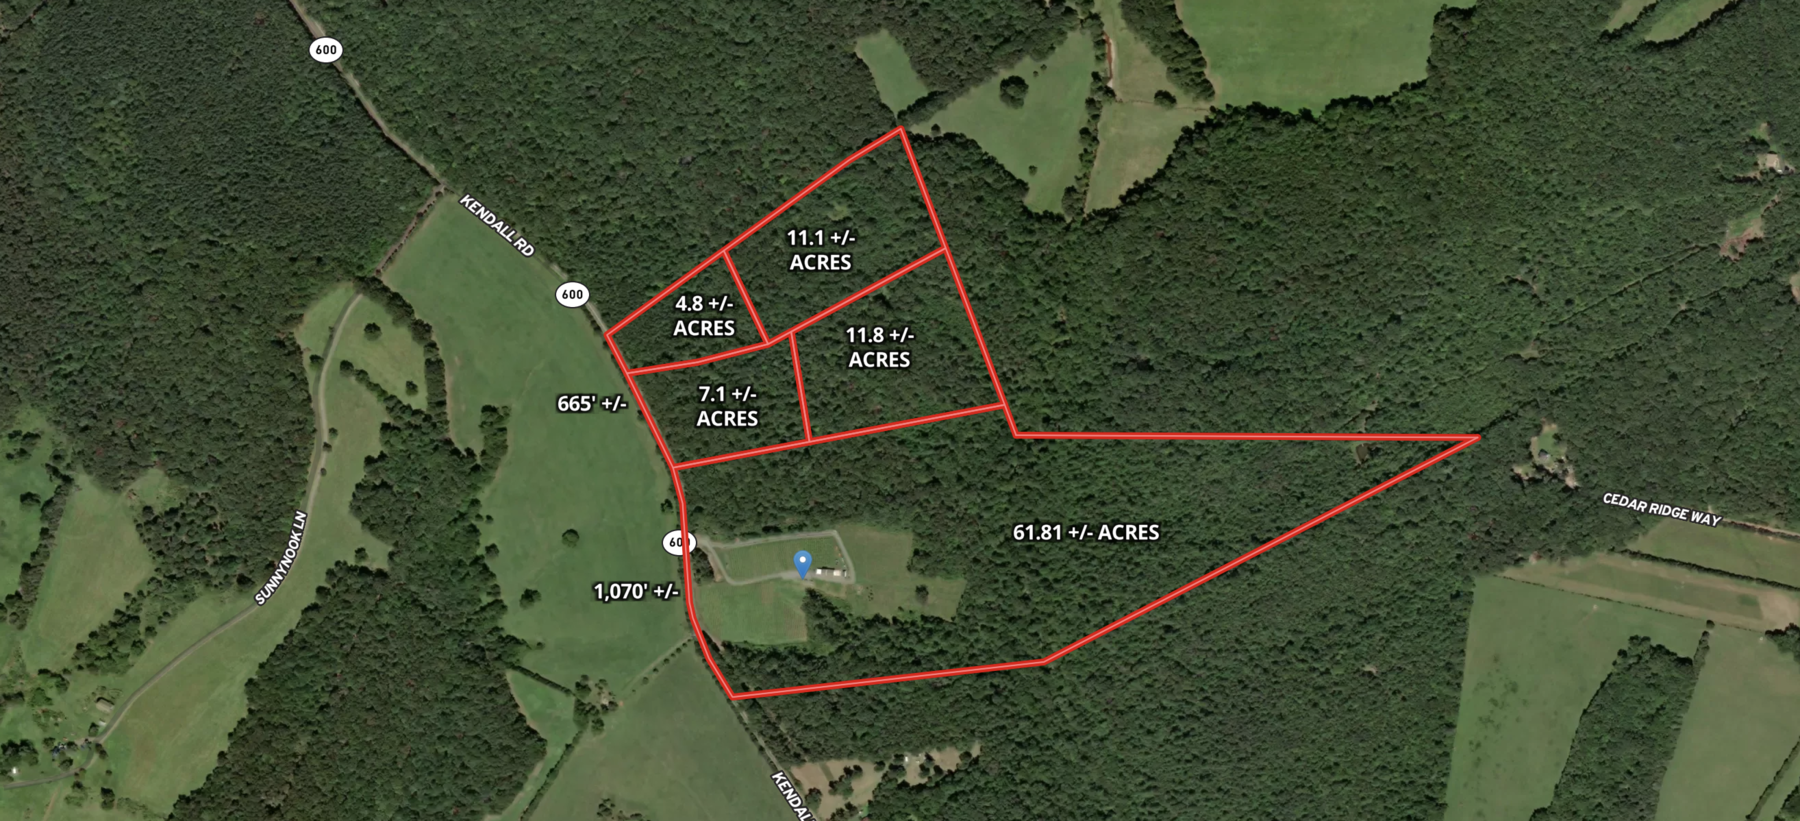 Image for 4 Contiguous Building Lots Totaling 35 +/- Acres in Orange County, VA